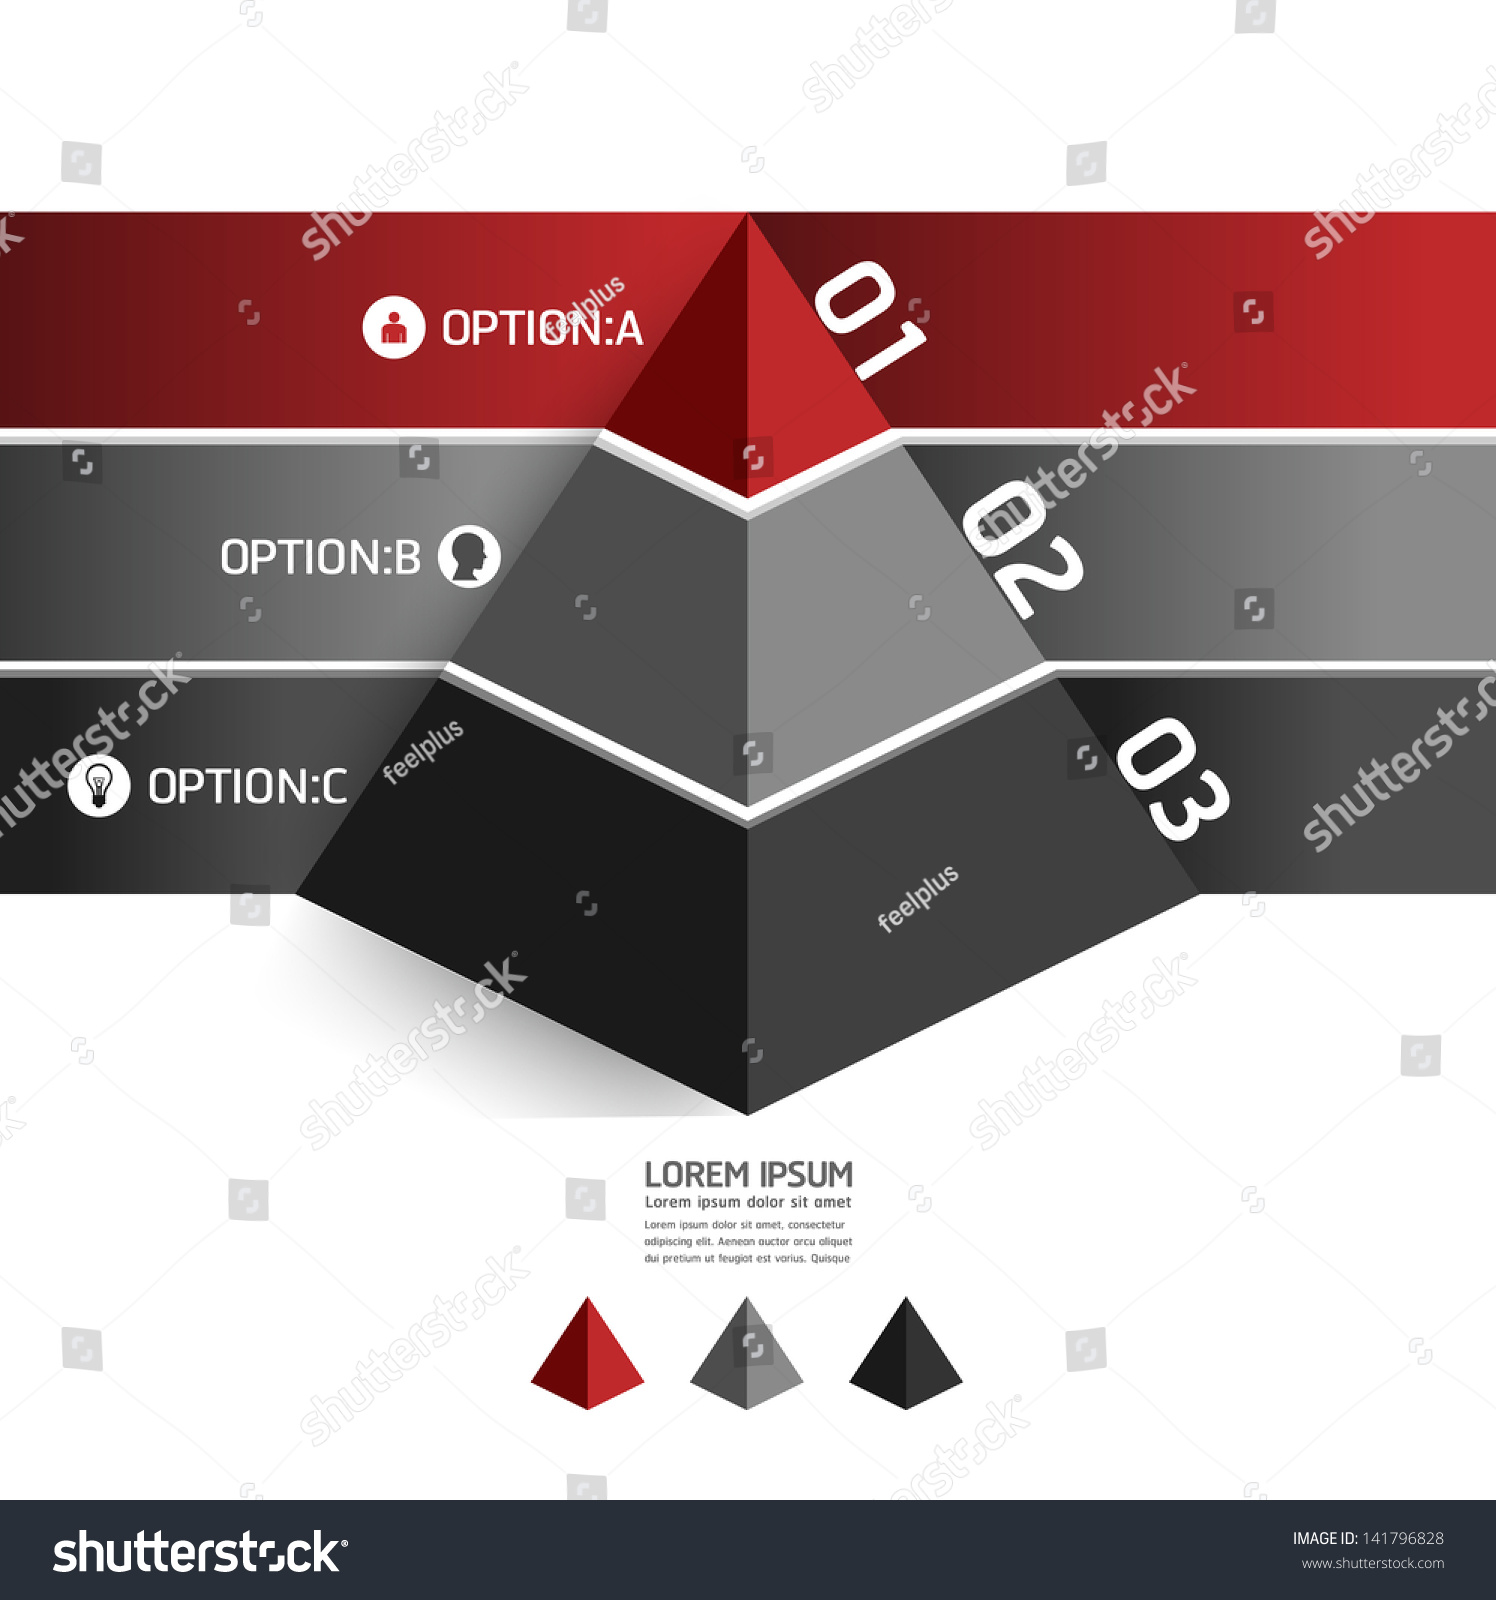 Modern Design Template Pyramid Style Can Stock Vector 141796828 ...